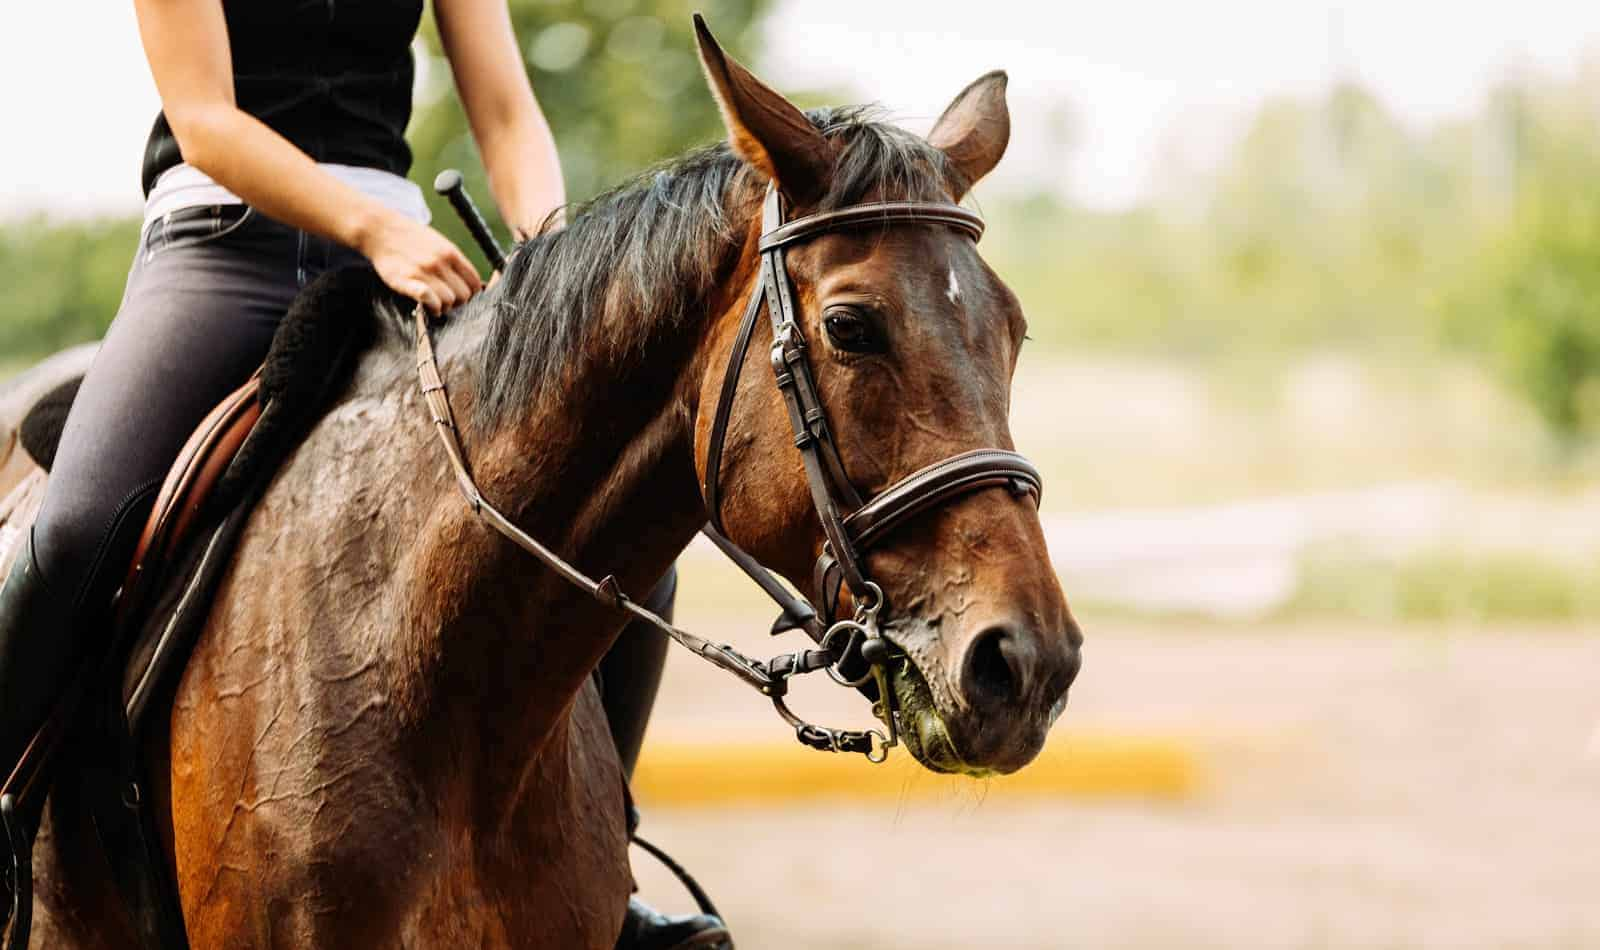 These are the biggest mistakes people make when buying their first horse. Knowing them can help you avoid regrets later. Take a look!